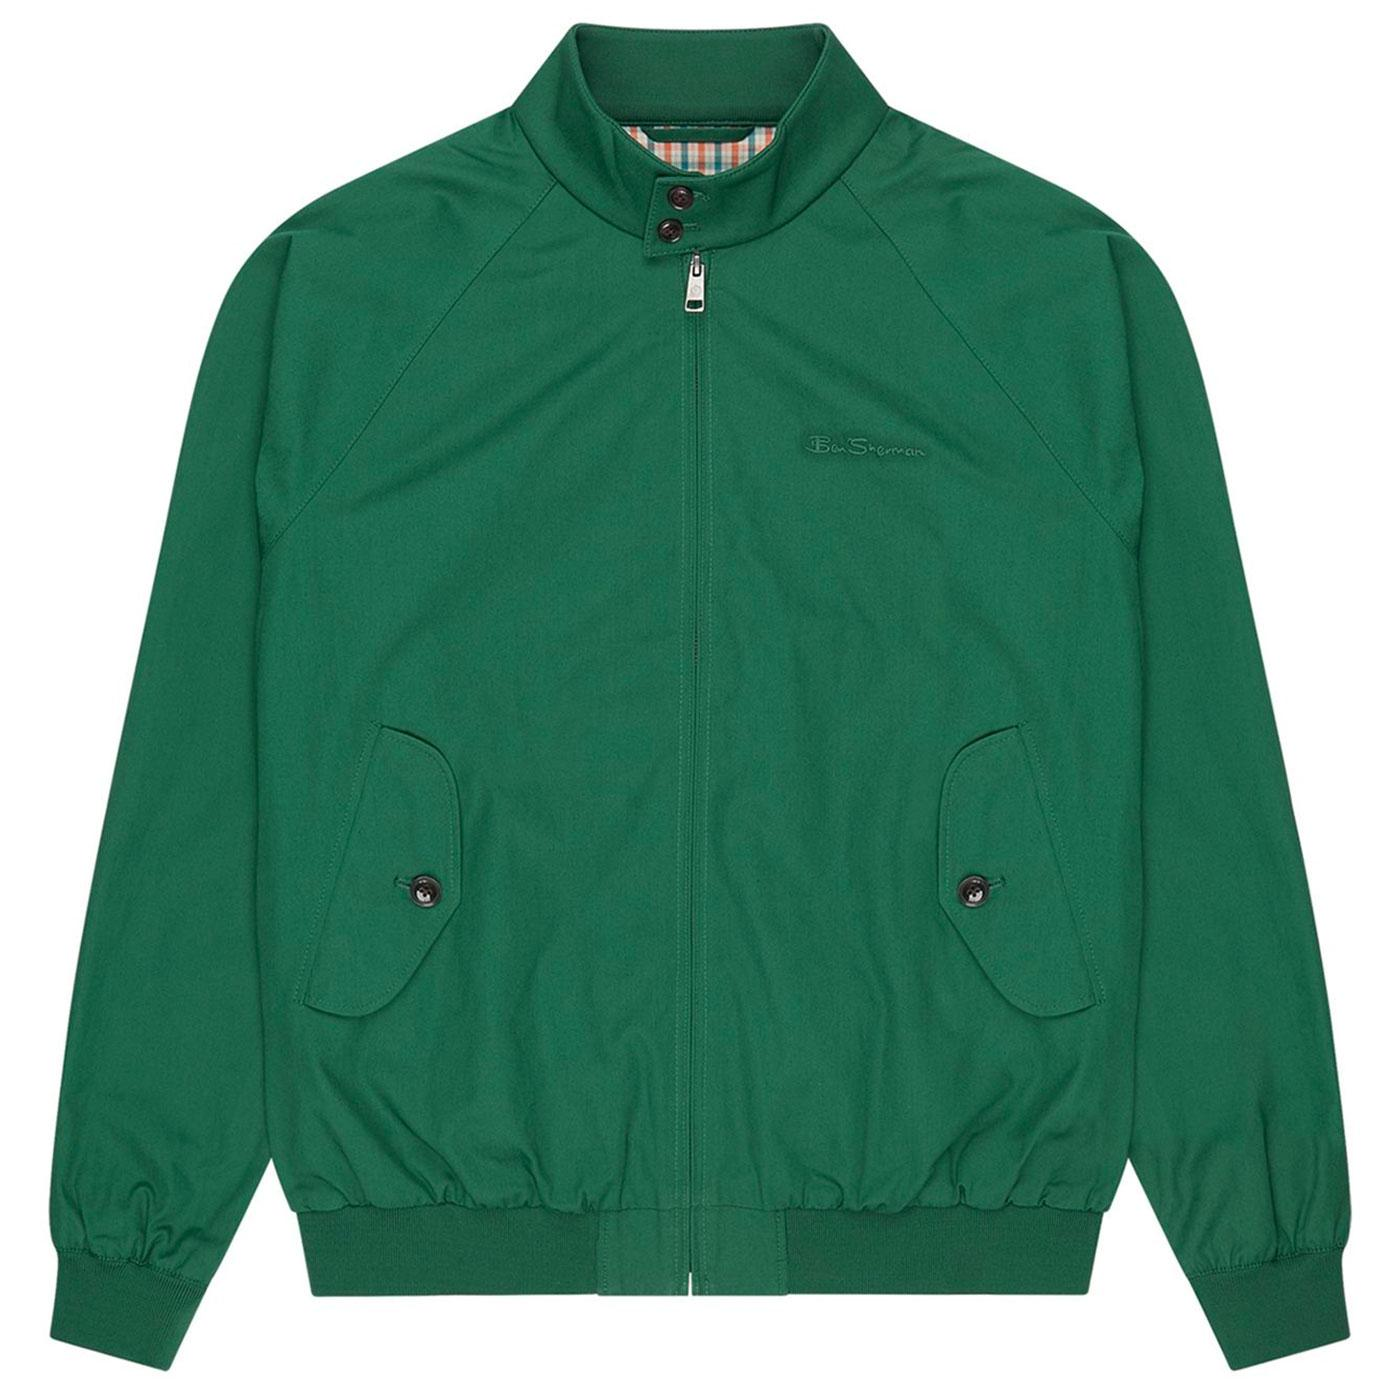 BEN SHERMAN Mod Signature Harrington Jacket -Green